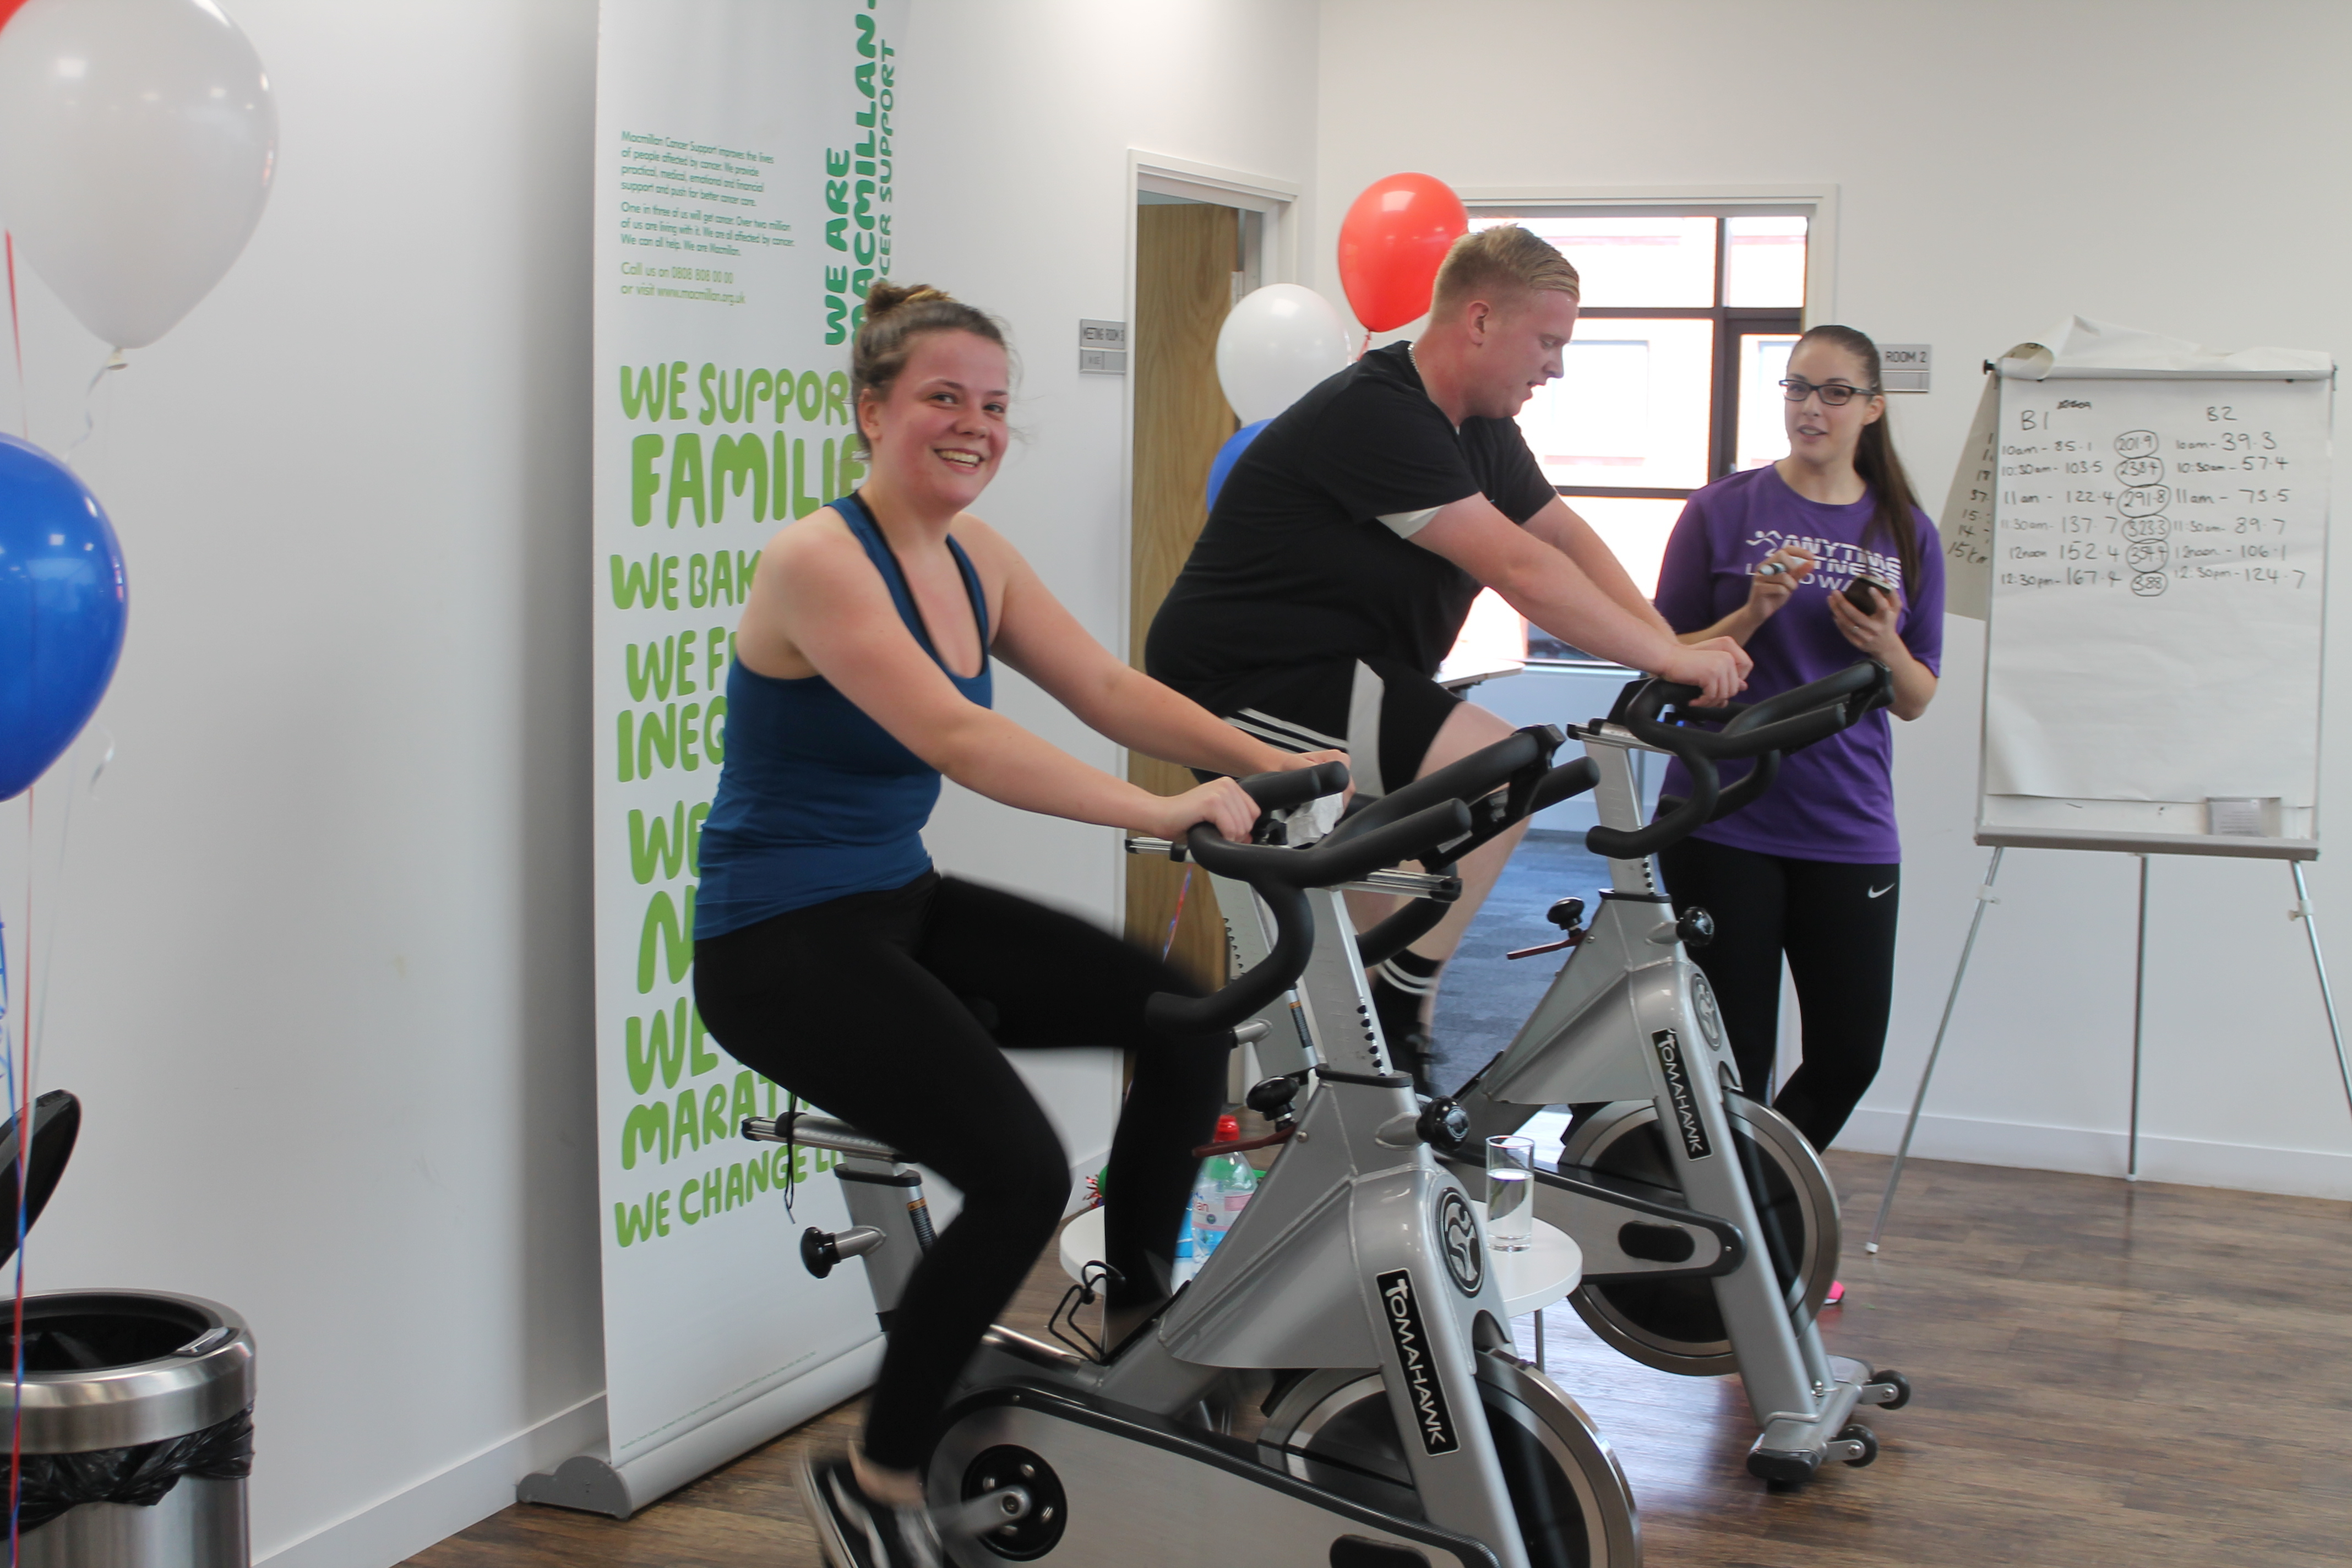 CliniMed staff riding on the training bikes